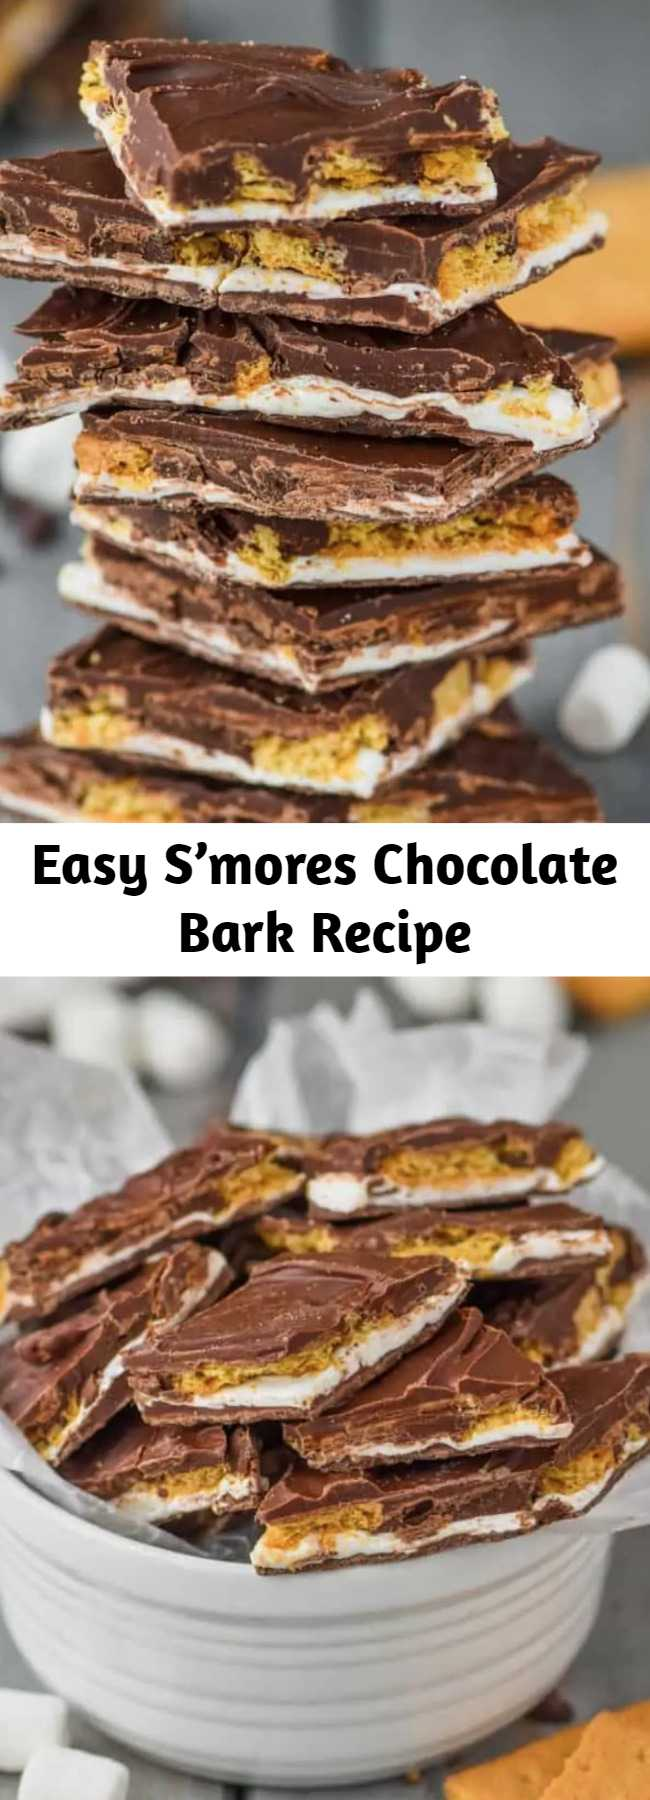 Easy S'mores Chocolate Bark Recipe - S'mores Chocolate Bark is a yummy, amazing inside out s'mores that you don't even need a camp fire for!  Chocolate Bark is my favorite thing to make because it is so easy and the possibilities are endless!